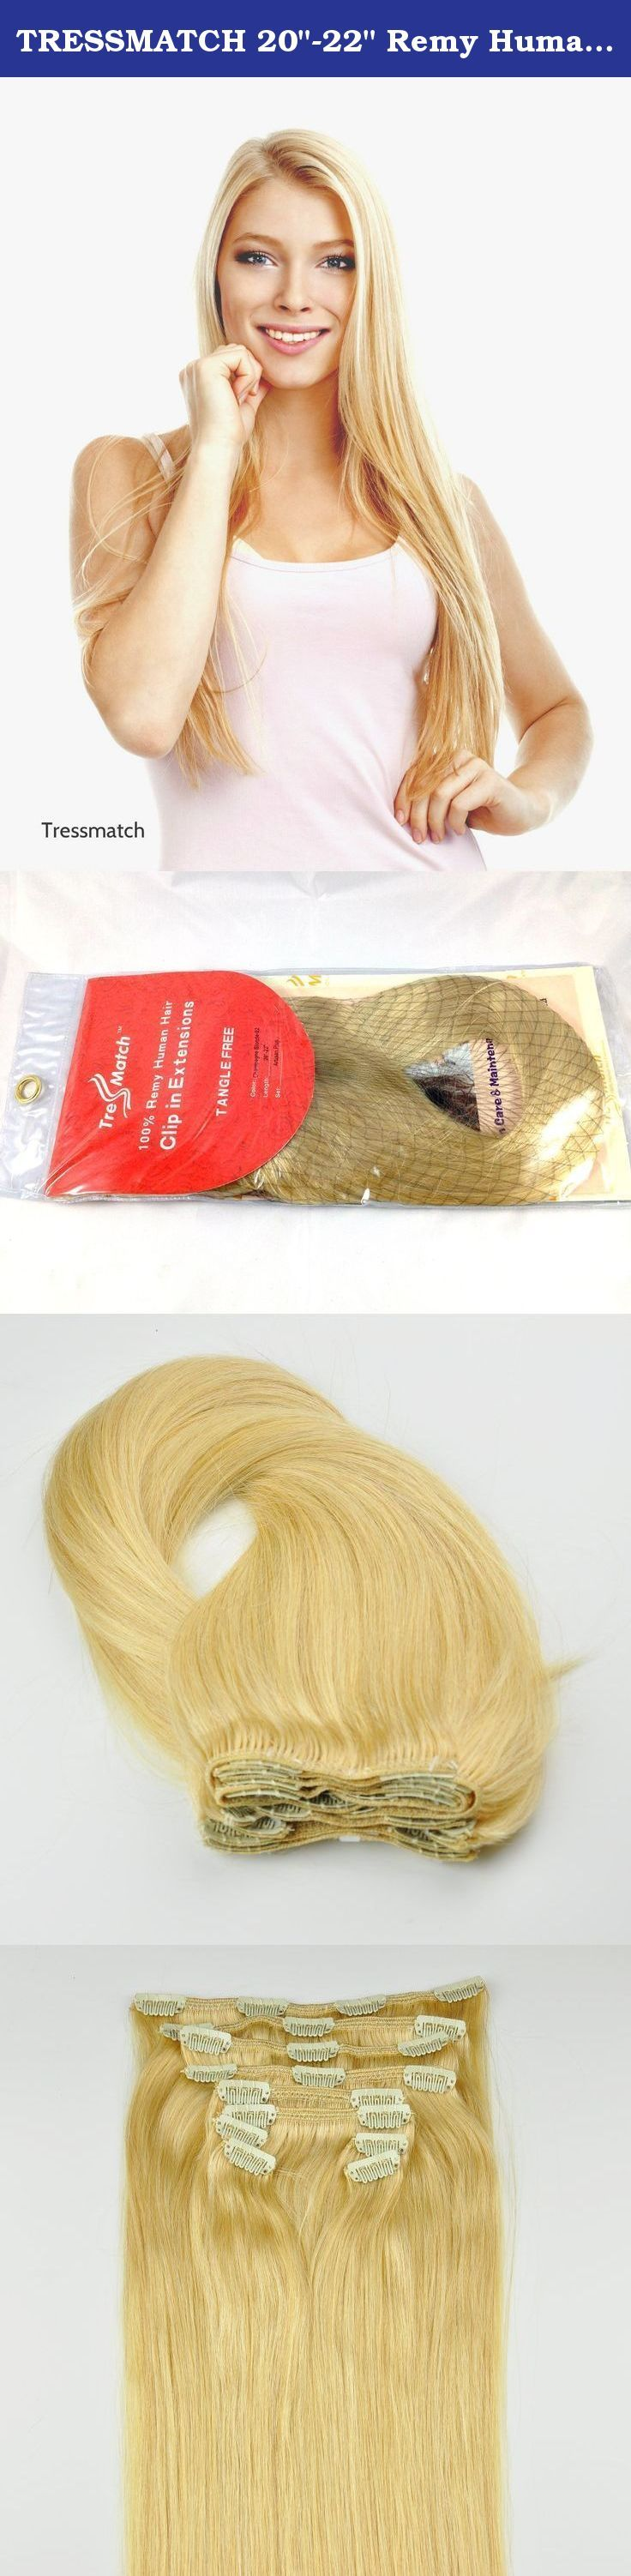 """TRESSMATCH 20""""-22"""" Remy Human Hair Clip in Extensions Champagne/Warm Blonde (#22) Thick to Ends Full Head Luxury Set [5.3oz/150grams). The champagne blonde is multi-toned, making it easy to match and blend with a range of medium to light blonde hair with warm tones. This 10-weft set (one 8"""" wide/ 4 clips, two 7"""" wide/3 clips each, one 6"""" wide/3 clips, two 4"""" wide/ 2 clips each & six 1.5"""" wide/ 1 clip each) offers you a quick and easy solution by adding hair length and style by yourself in..."""